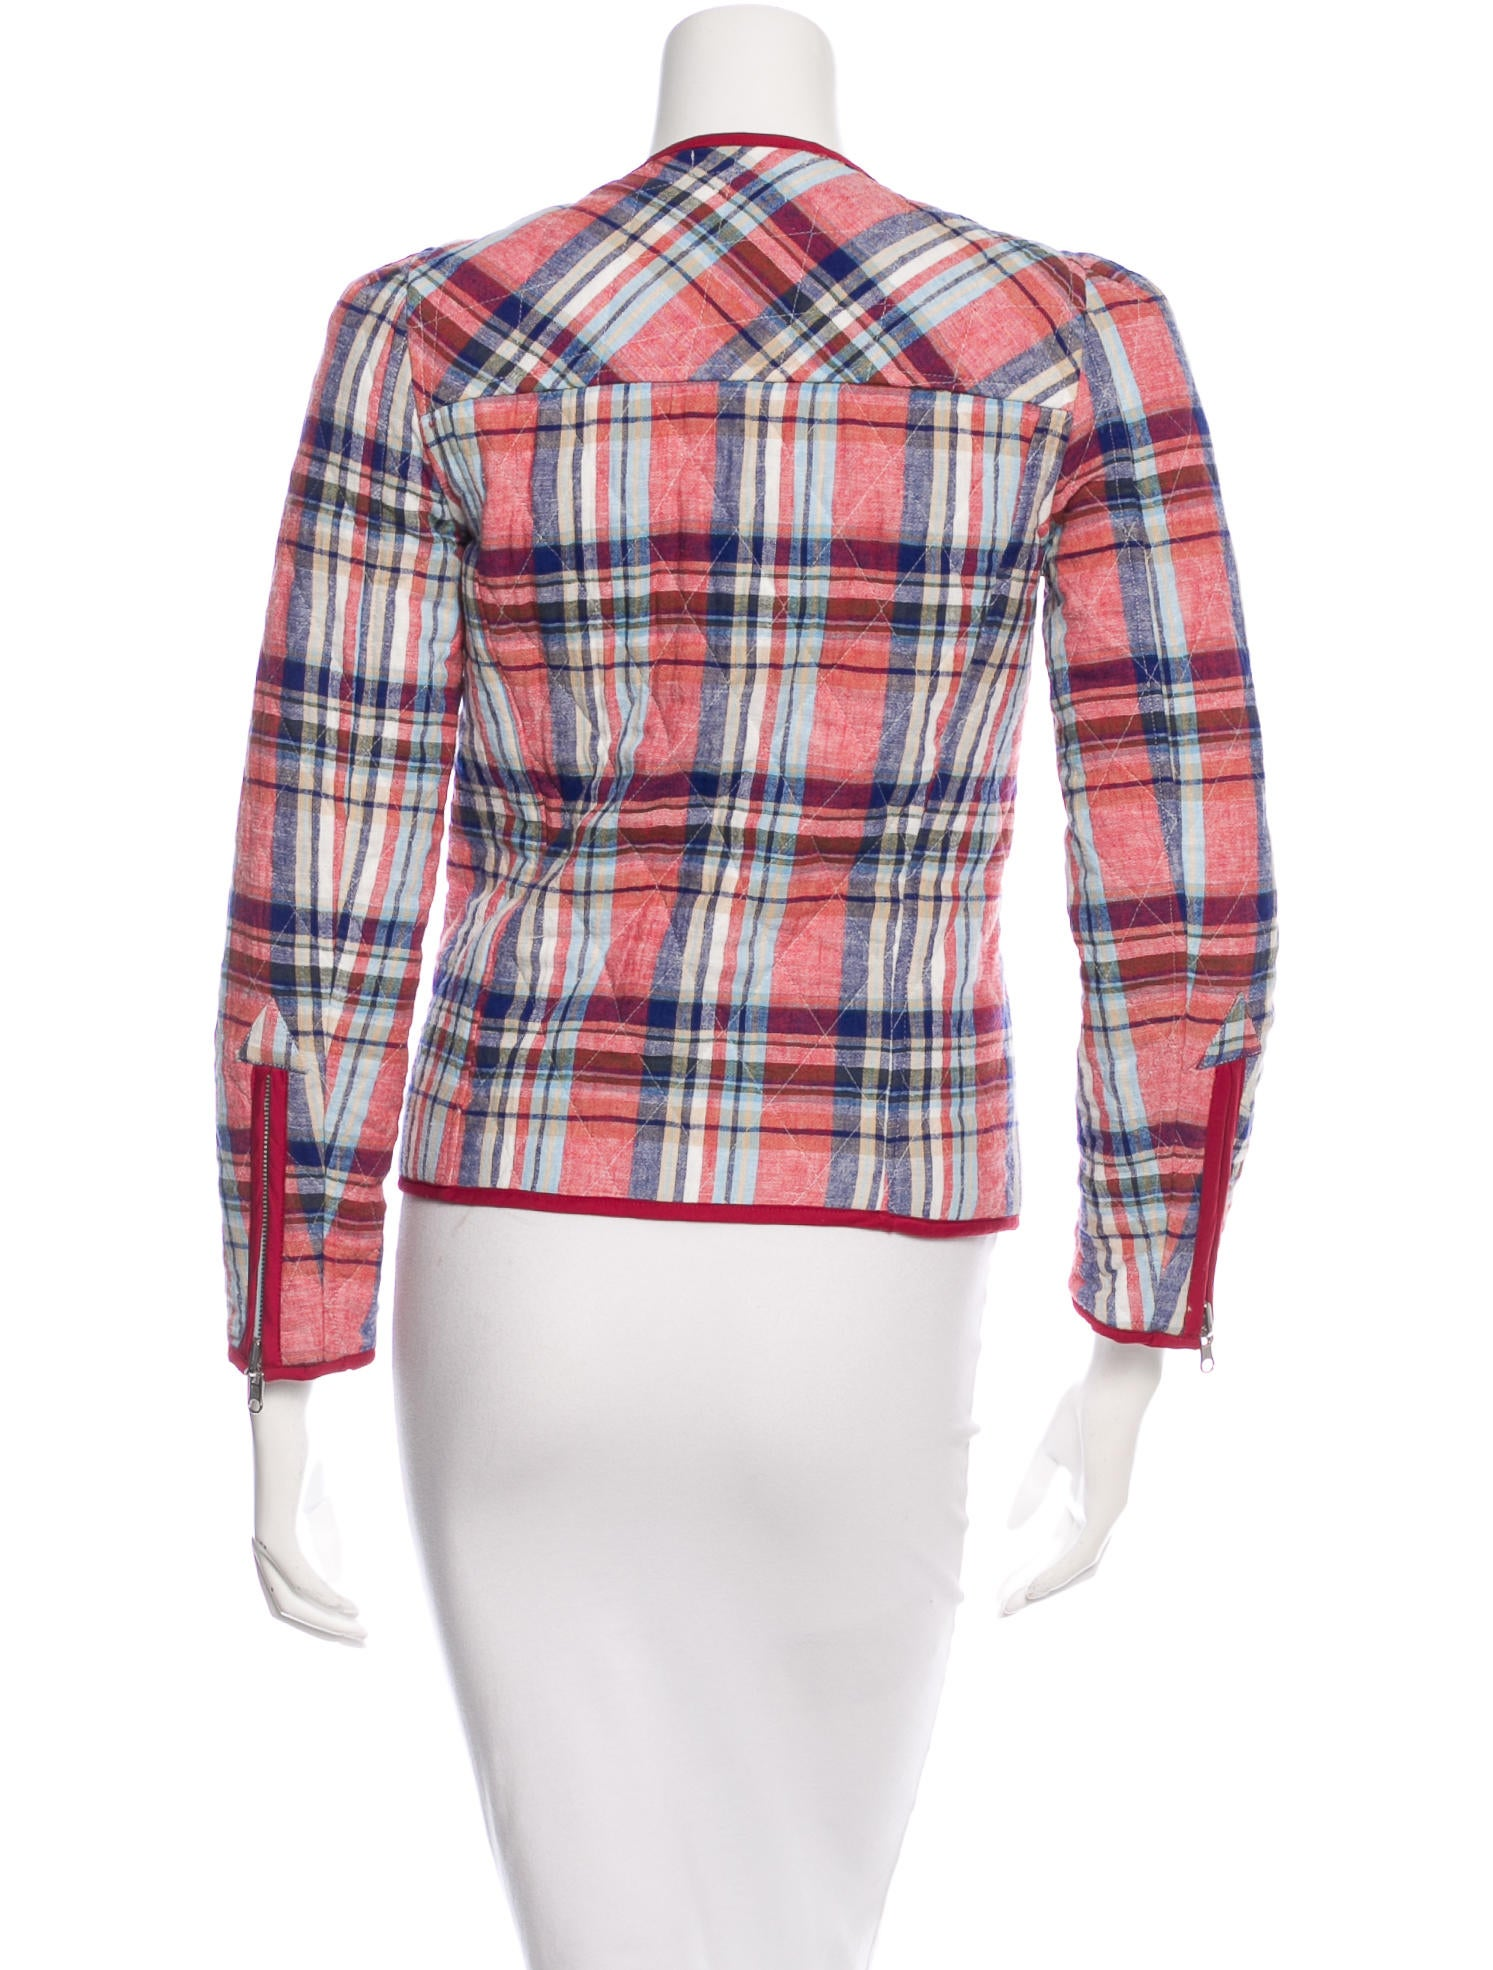 RefrigiWear Jersey Lined Quilted Hooded Sweatshirt - Fiberfill Insulated Hoodie. Sold by RefrigiWear. $ Rothco Extra Heavyweight Brawny Sherpa-Lined Flannel Jacket in Blue, Red or White Plaid. Sold by Captain Dave's + 1. $ - $ $ - $